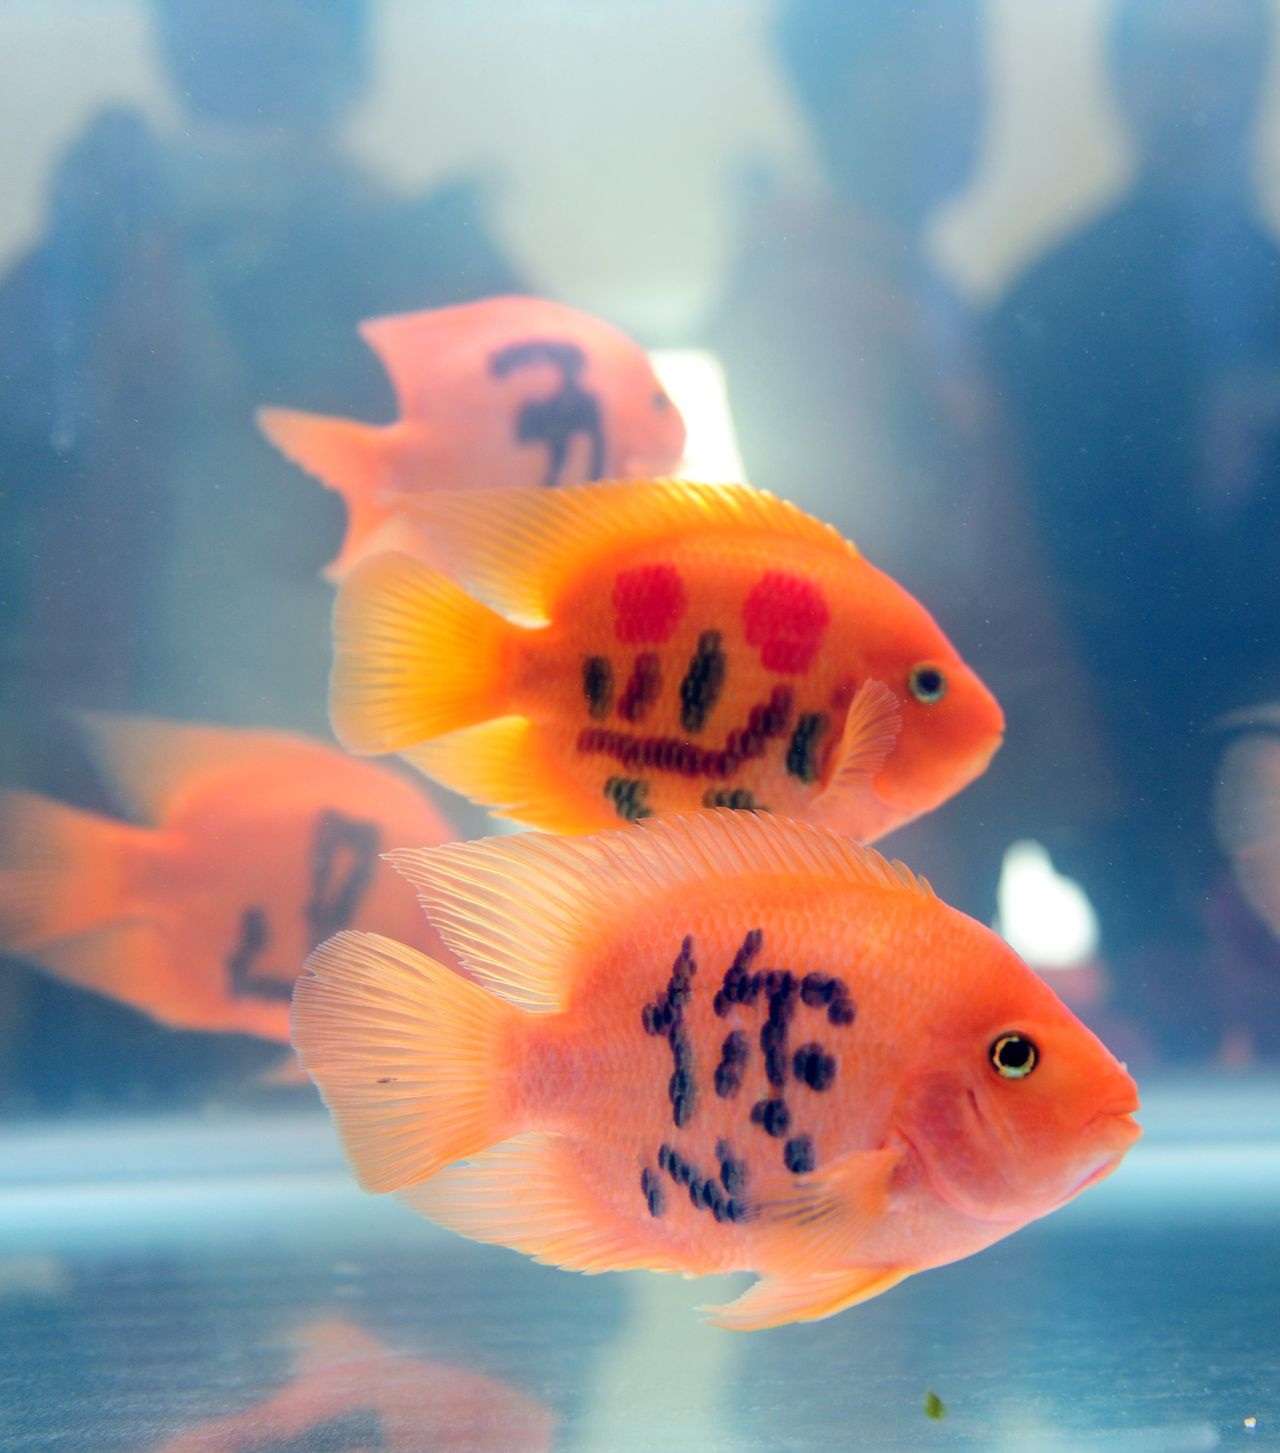 Tattooed goldfish are on display during the International Tropical Agricultural Winter Fair in Haikou, south Chinas Hainan province, 12 December 2011. The Chinese just cant seem to get enough when it comes to tampering with goldfish. Who can forget the live goldfish keychains last spring or the goldfish whisperers synchronized fish performance which can only be described as magnetic? Now these sprite little swimmers, viewed as tokens of wealth in Chinese culture, are being tattooed with symbols said to bestow fortune upon their masters. Although fish-tatooing has technically been around since 2005, its popularity has spiked dramatically these past two years. The fish currently in question were on display on December 14 at the International Tropical Agricultural Winter Fair held in Haikou, Hainan province. Each fish bore an inked character which, when read all together, said Wuzhi Mountain Welcomes You. And as with any tattoo the process of fish-inking is none too gentle. Its the result of injecting a special medication which takes six months to form. Or if you simply dont have the time, its possible to use lasers. Not surprisingly, similar to previous instances of goldfish meddling, marking fish has sparked an outrage among animal rights activists, who label the practice inhumane and unnatural.